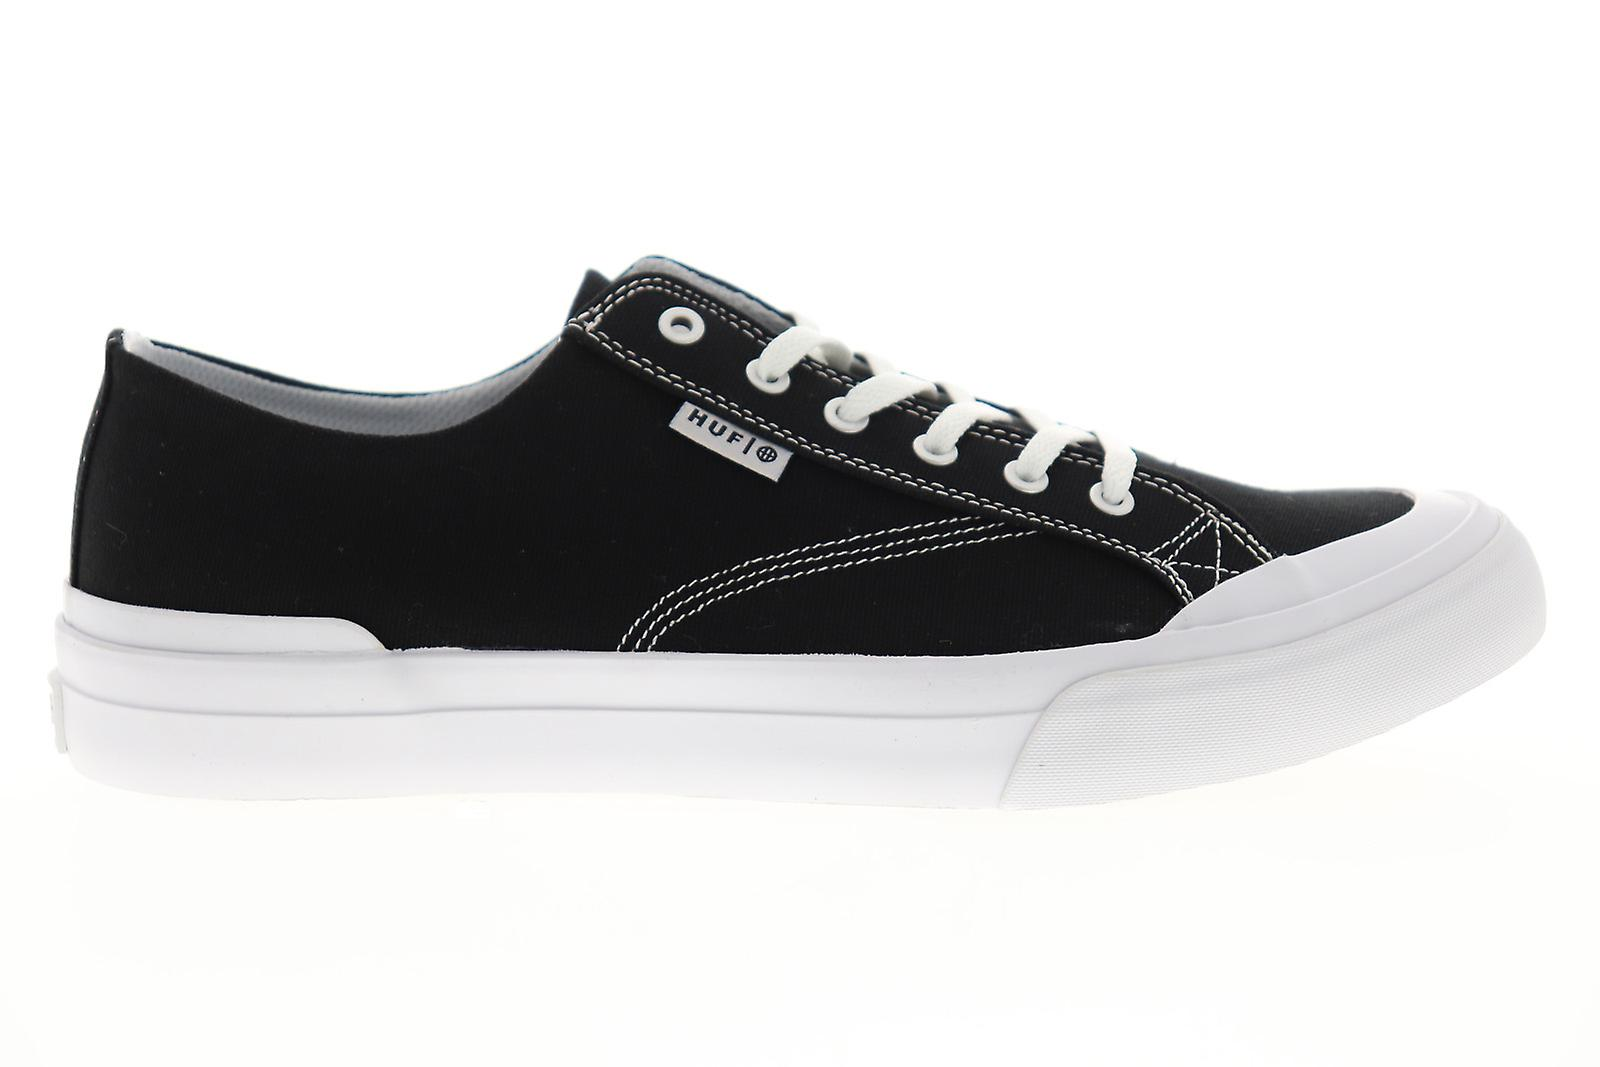 HUF Classic LO ESS TX Mens Black Canvas Low Top Athletic Skate Shoes